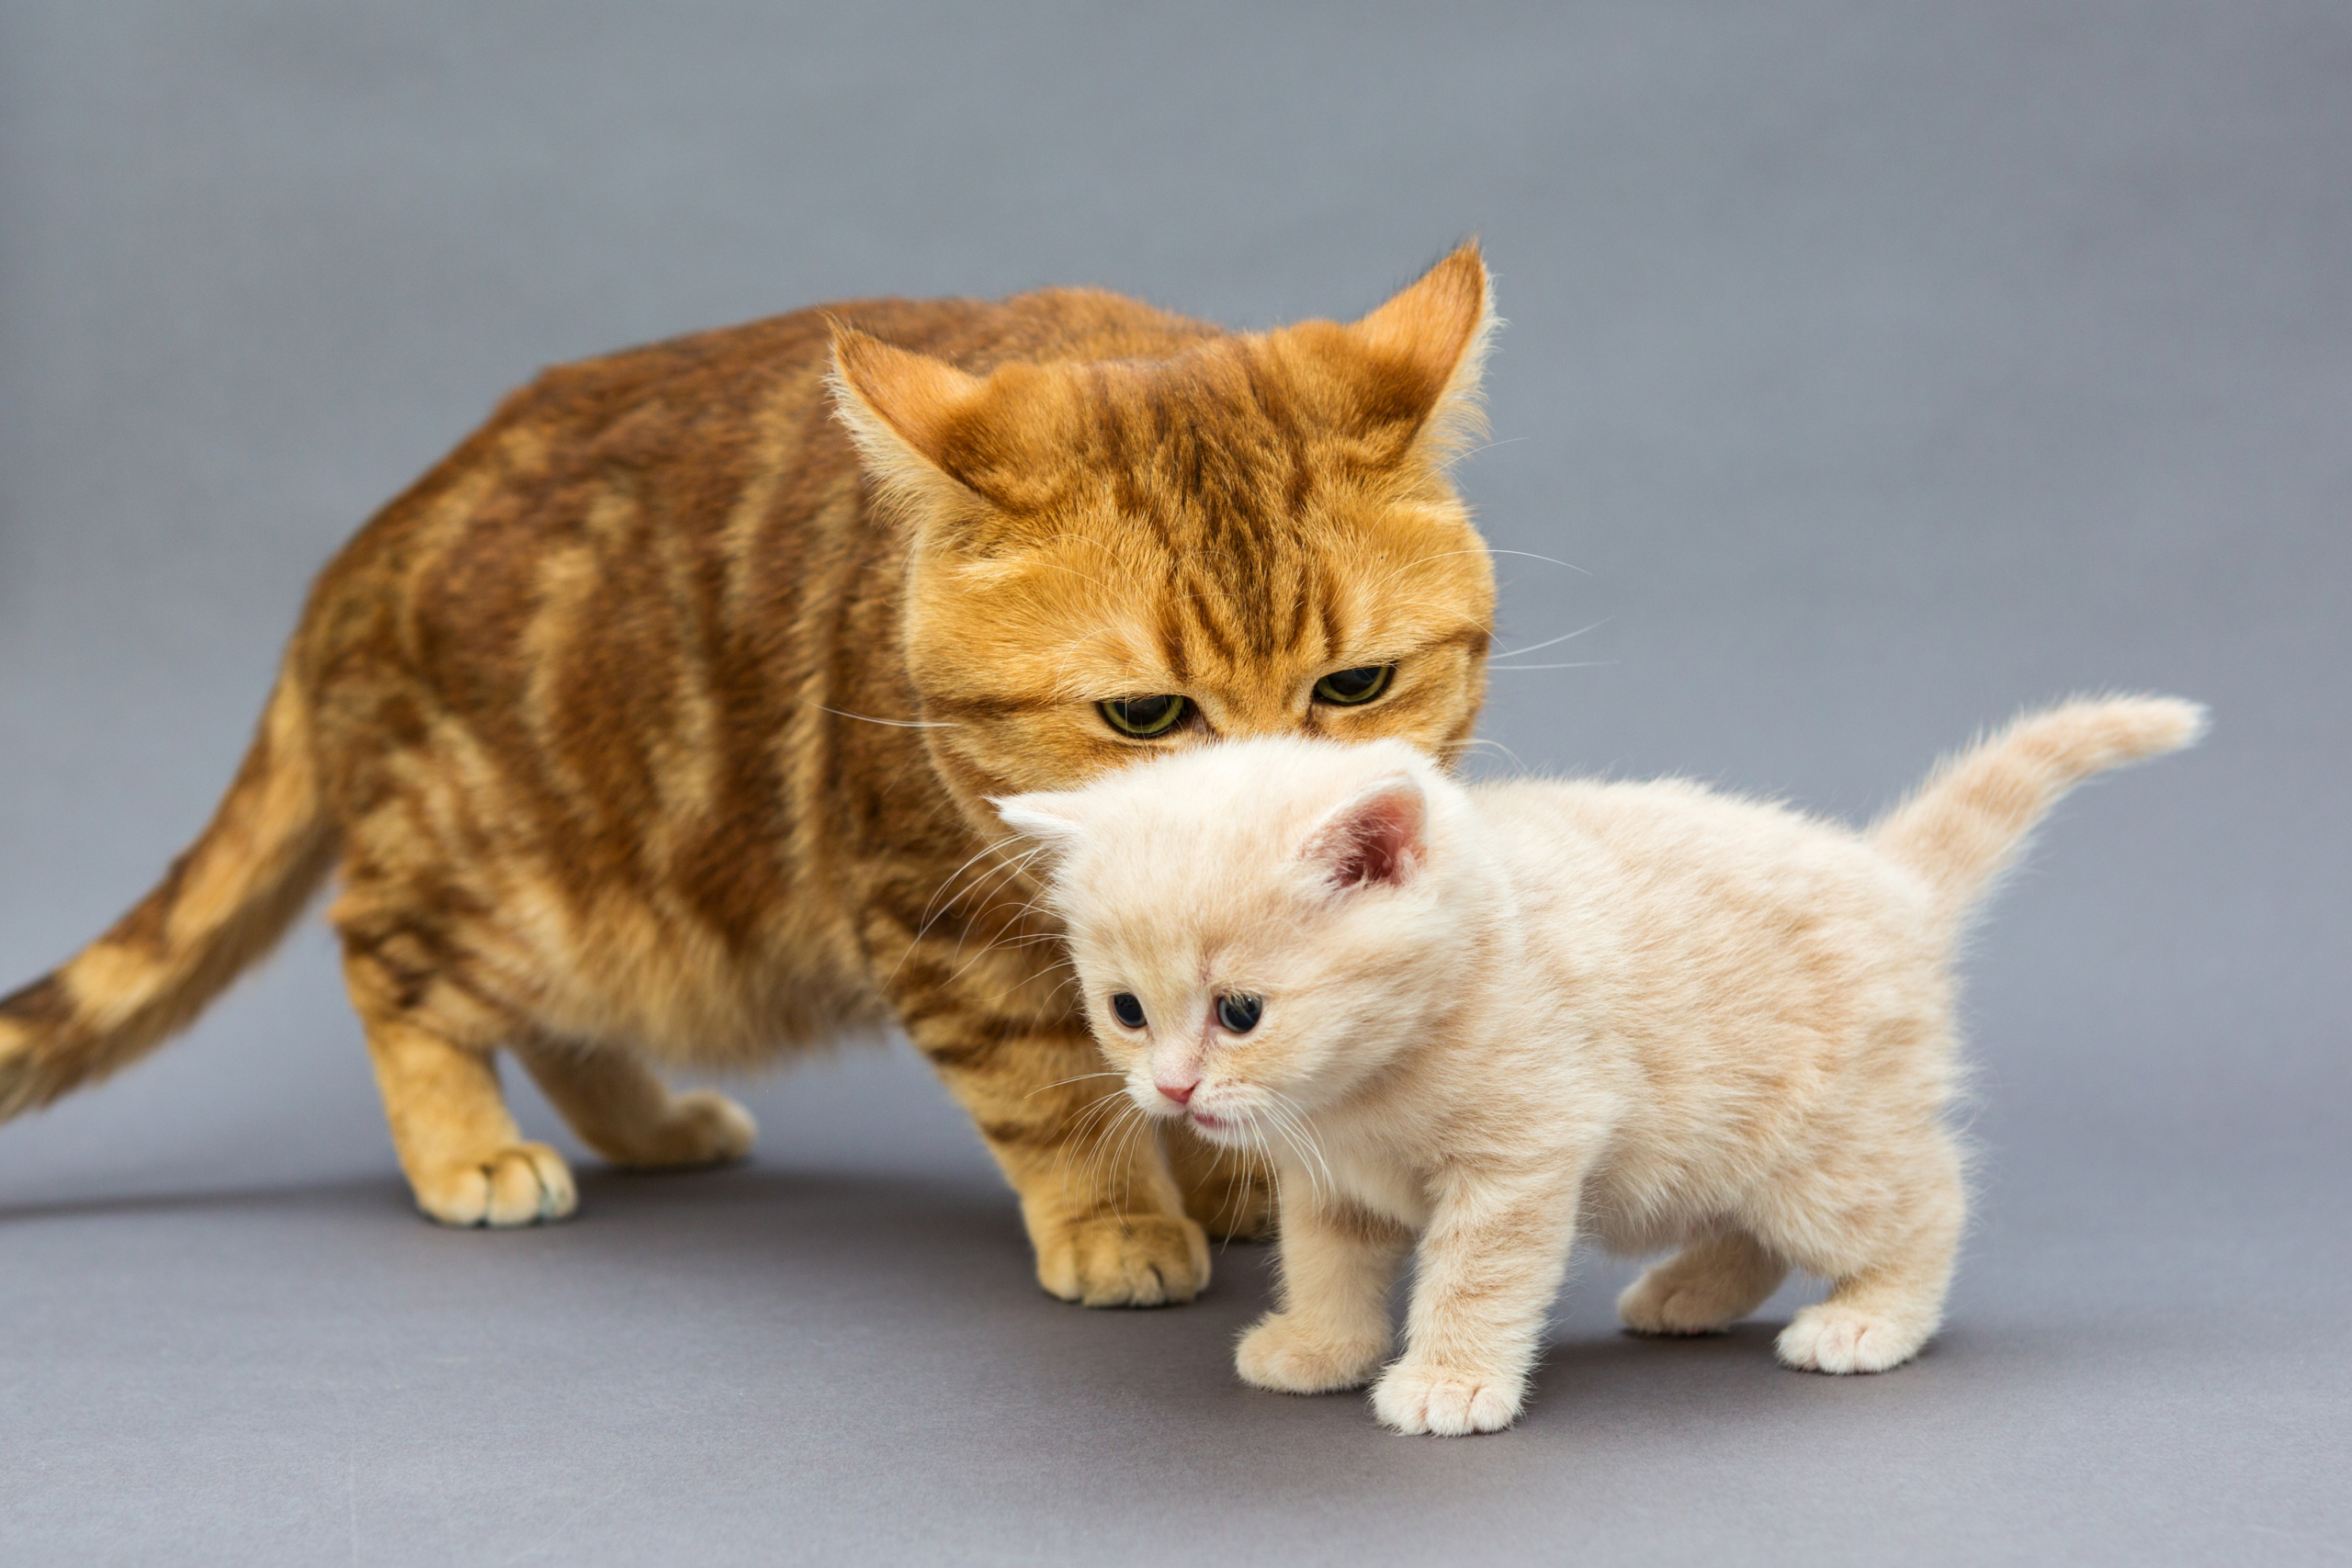 5 Things You Should Know About Postnatal Care for Cats